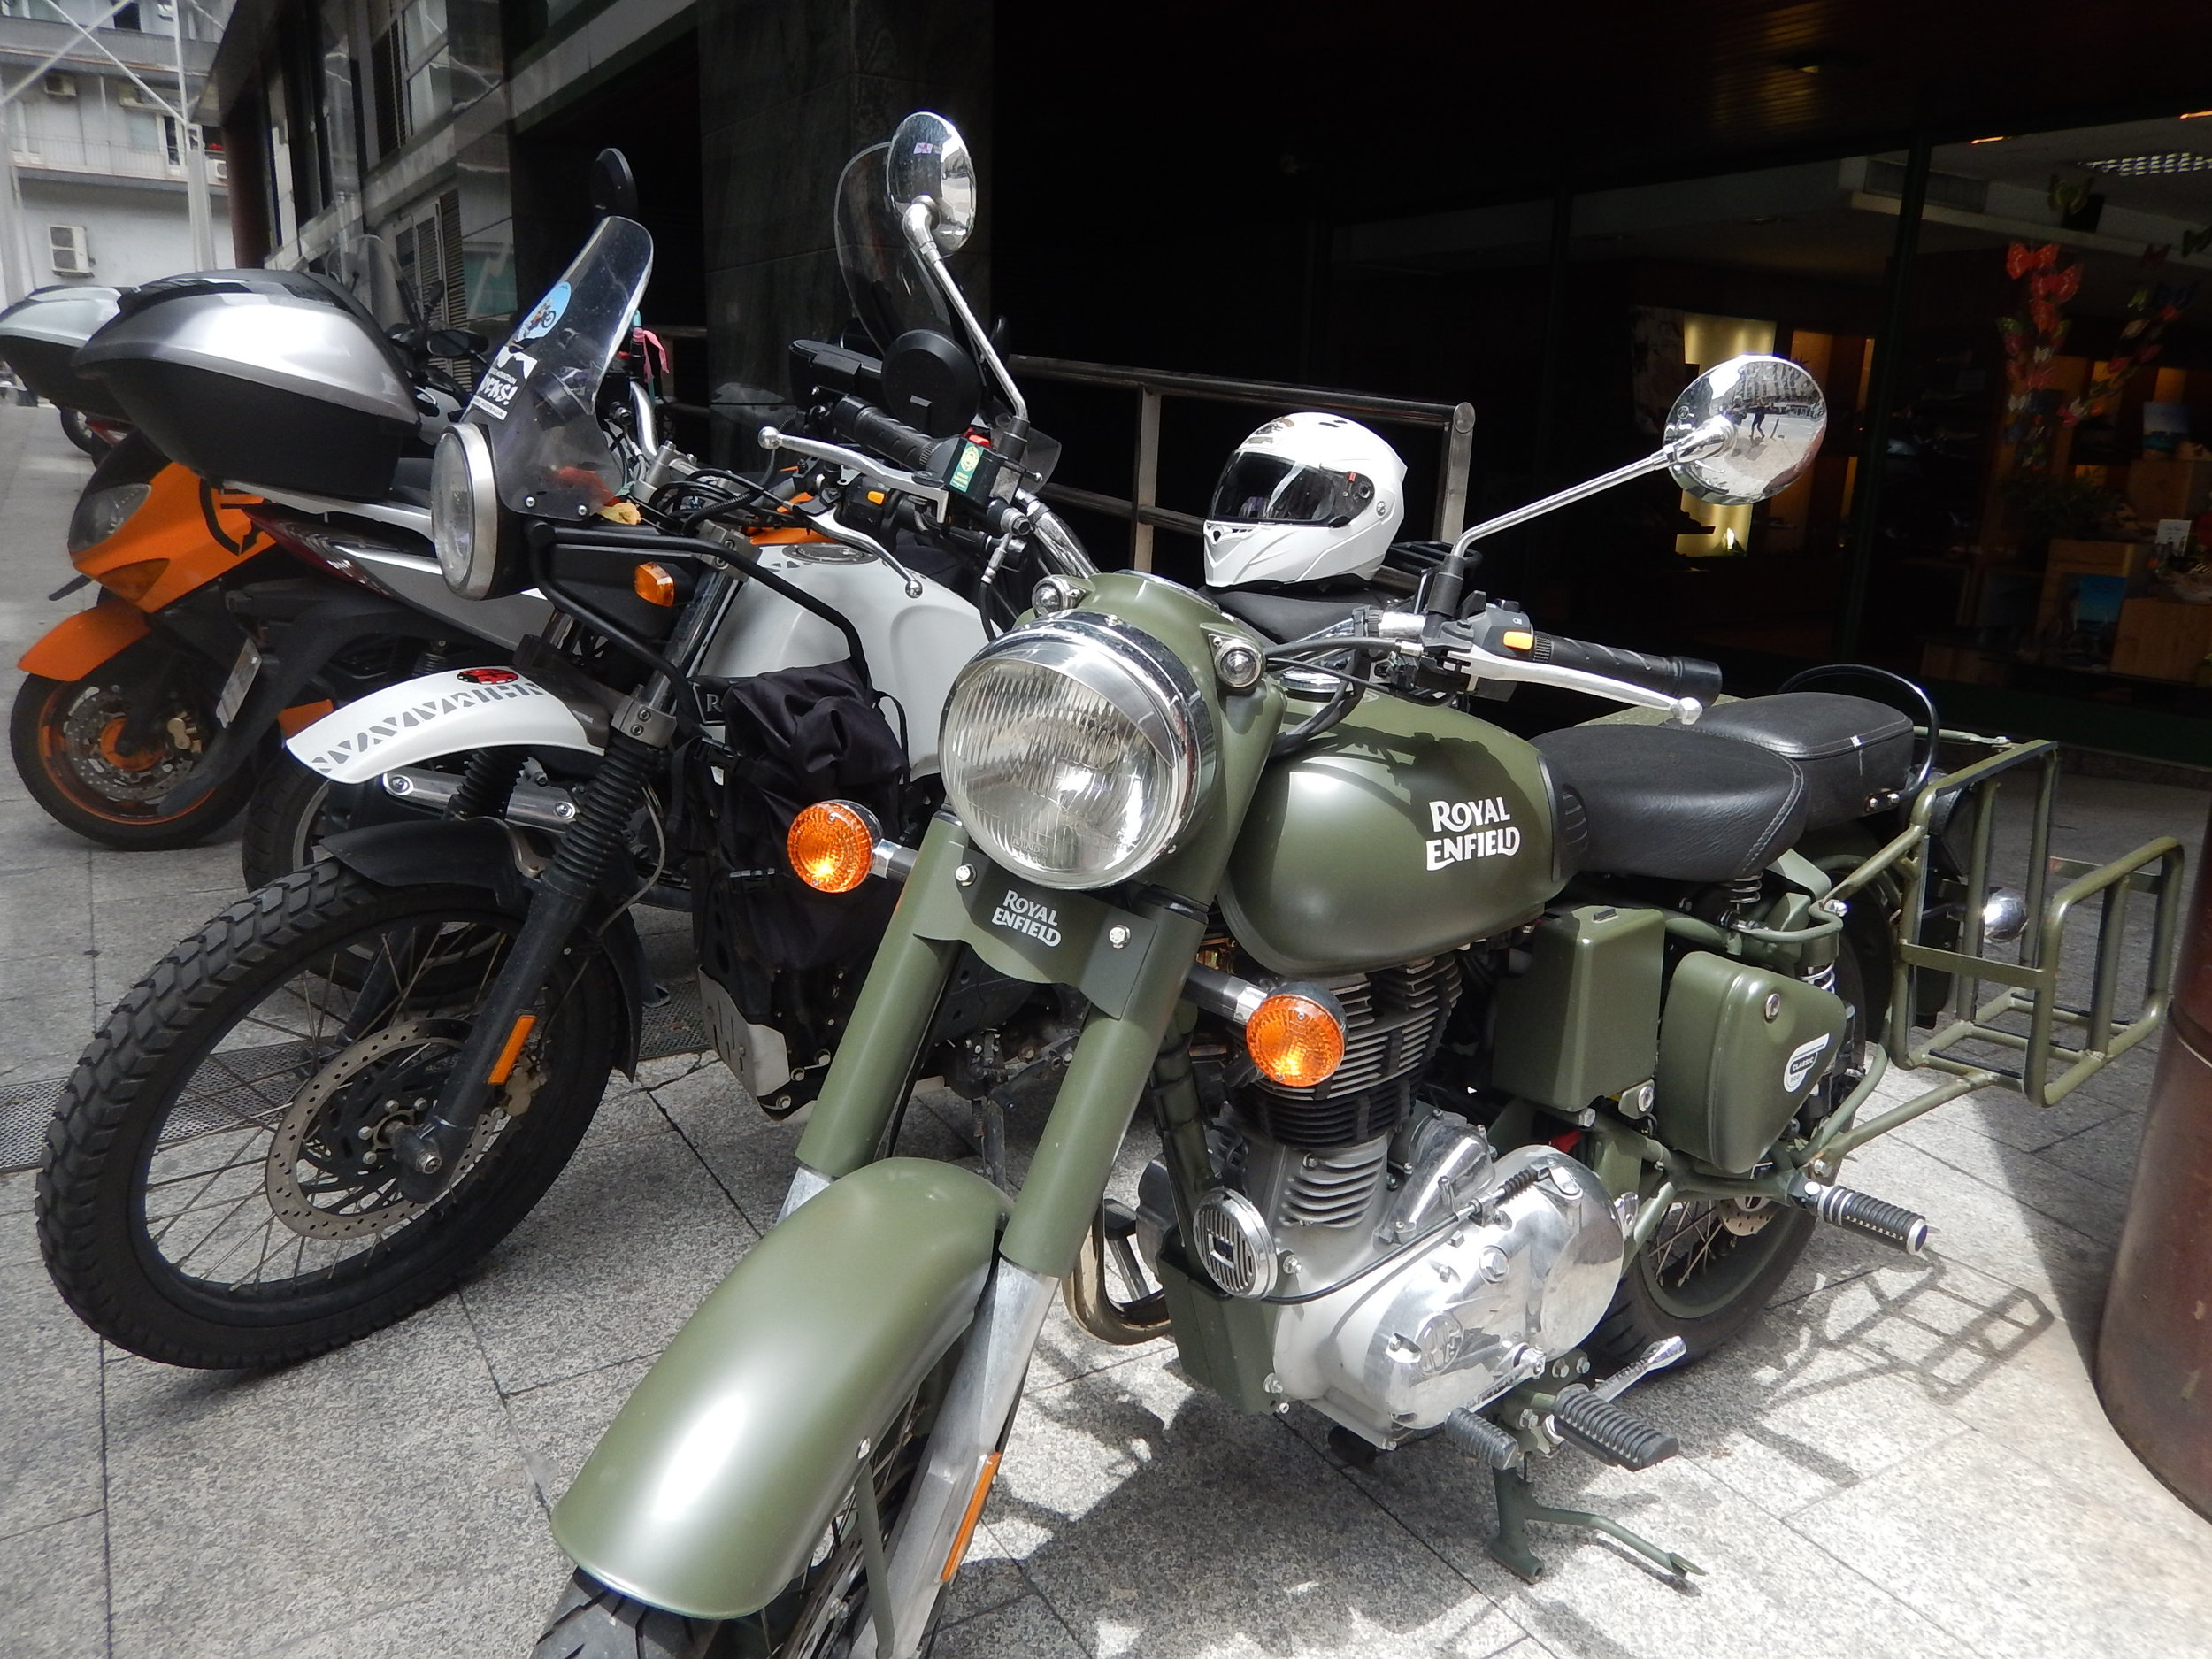 look at that! It's another Royal Enfield.